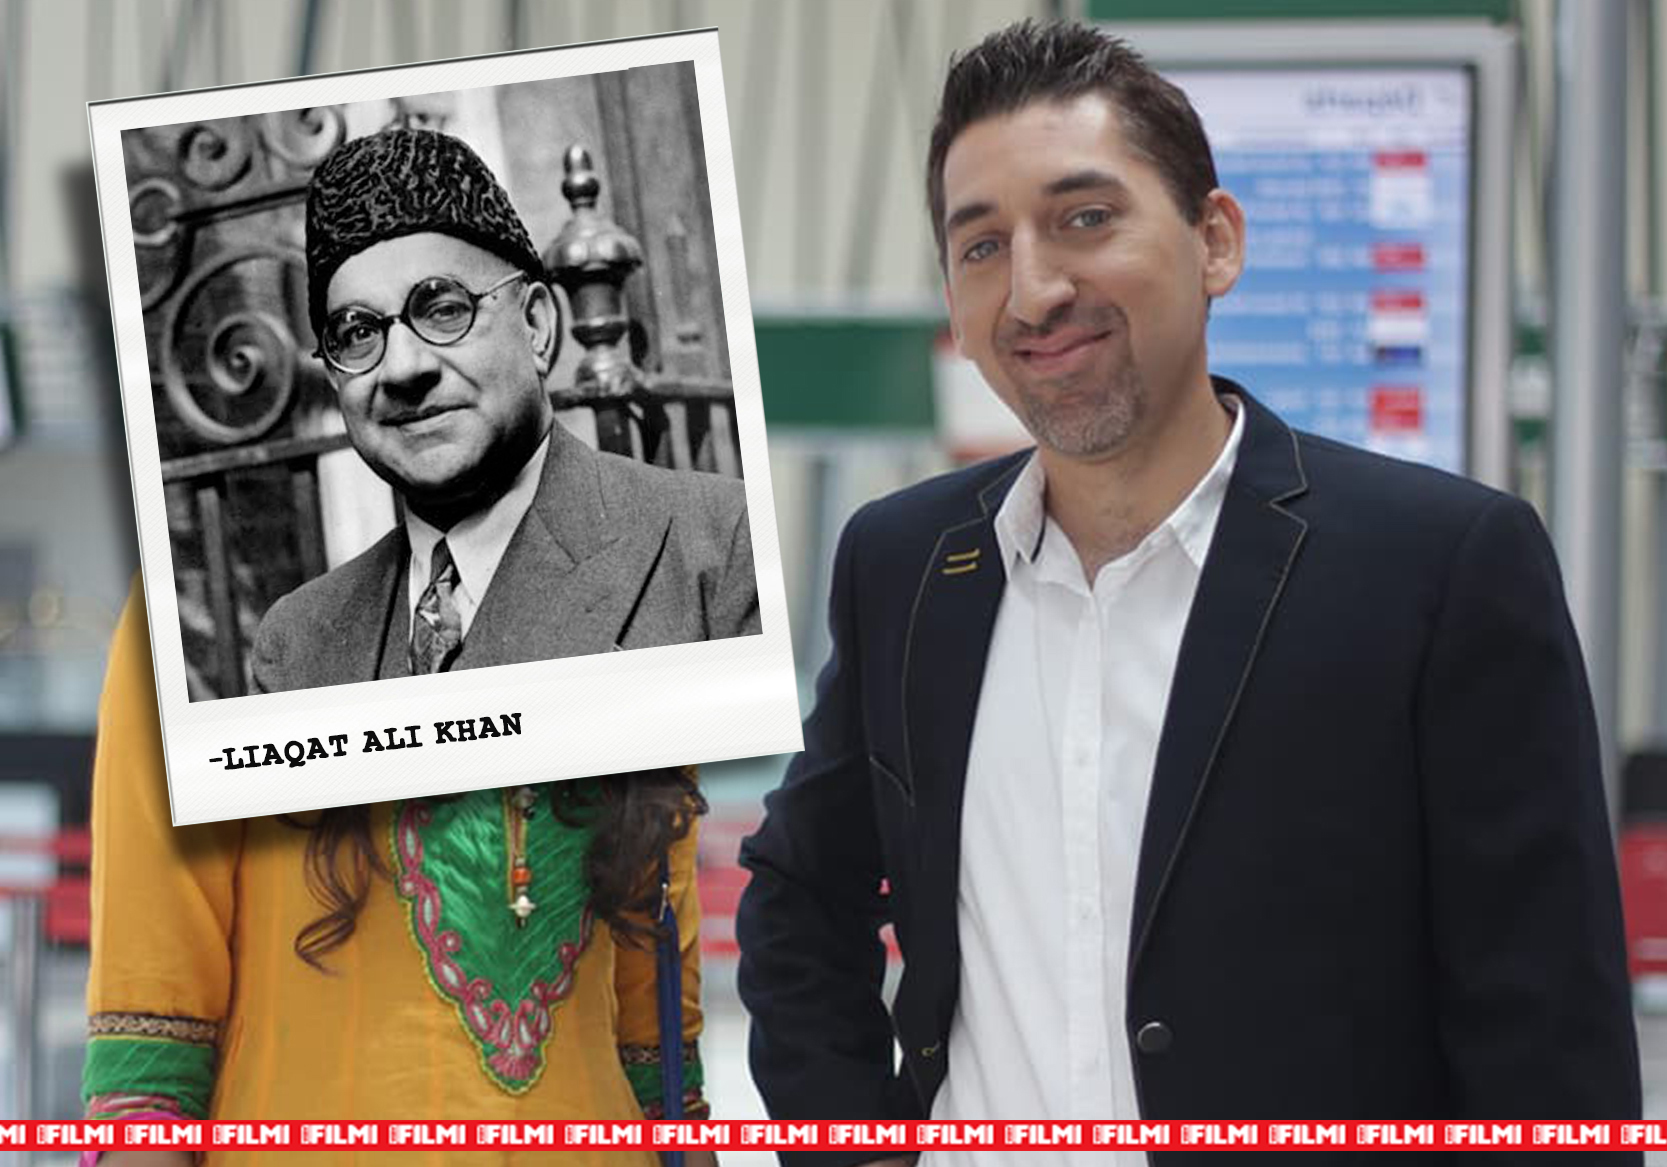 adeel hashmi as LIAQAT ali khan